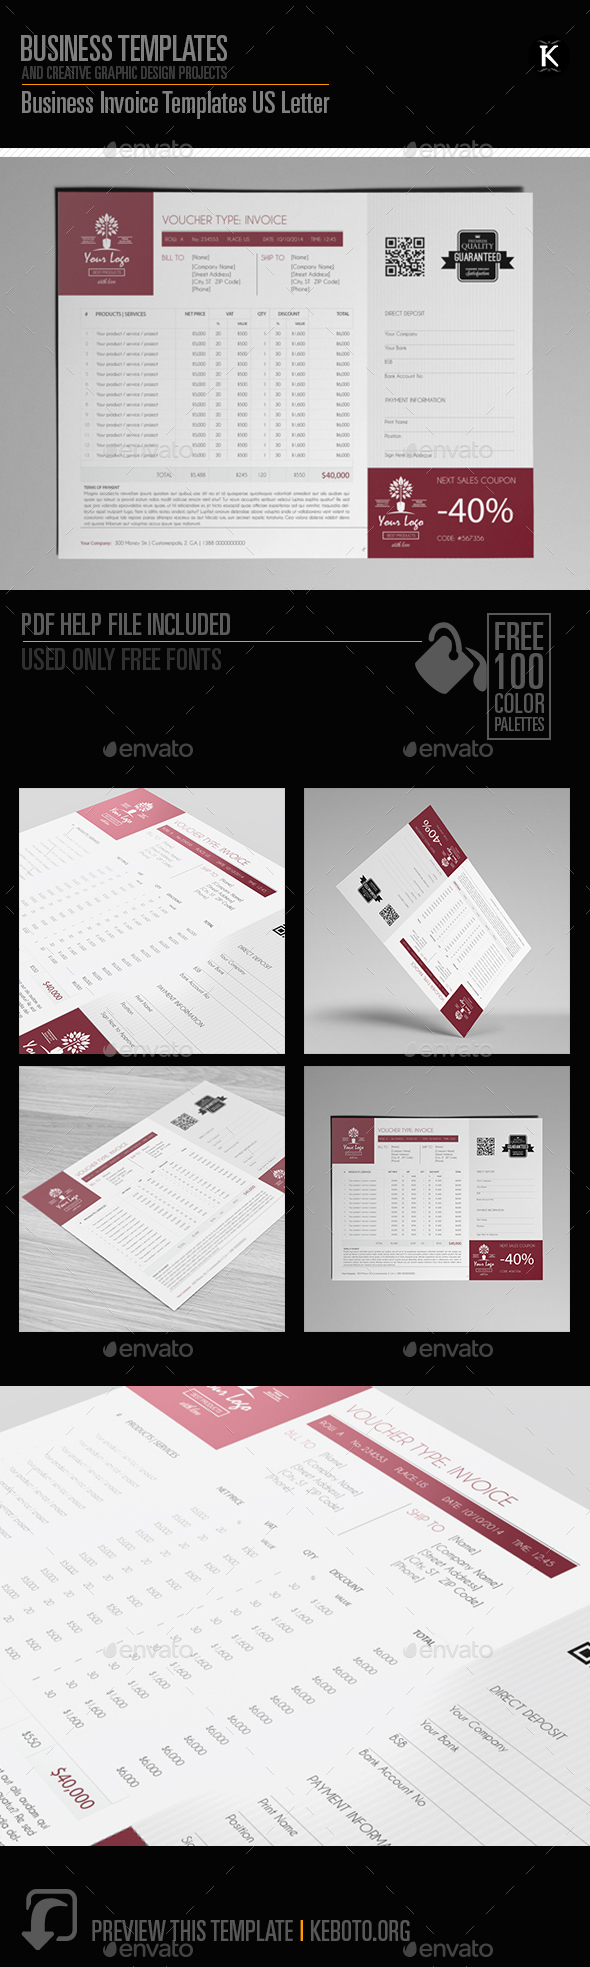 Business Invoice Templates Us Letter - Proposals & Invoices Stationery